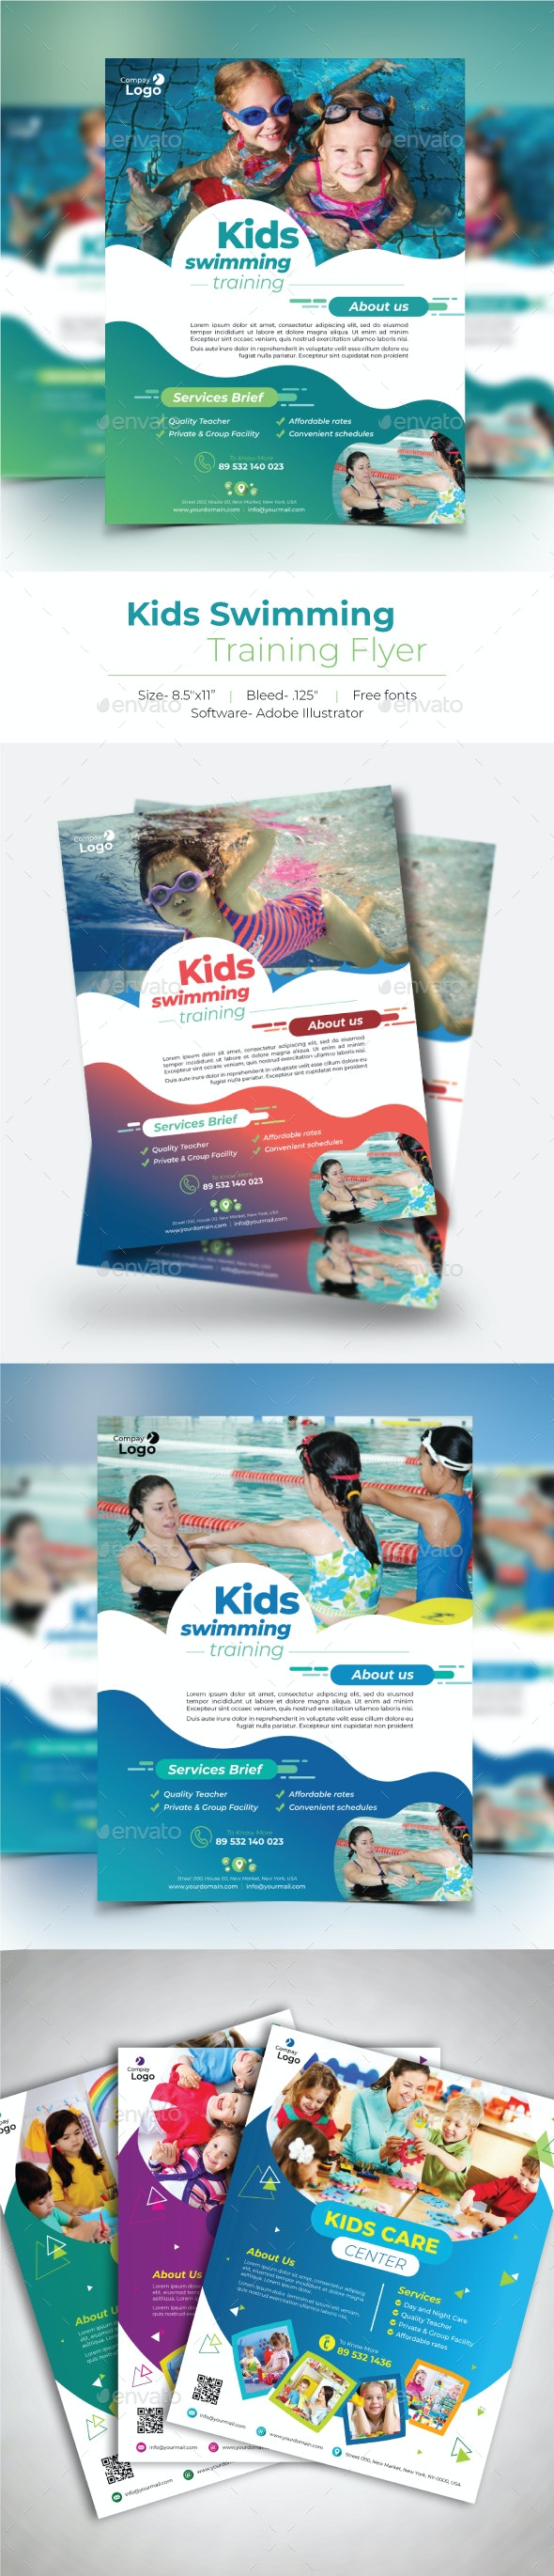 Kids Swimming Training Flyer - Flyers Print Templates